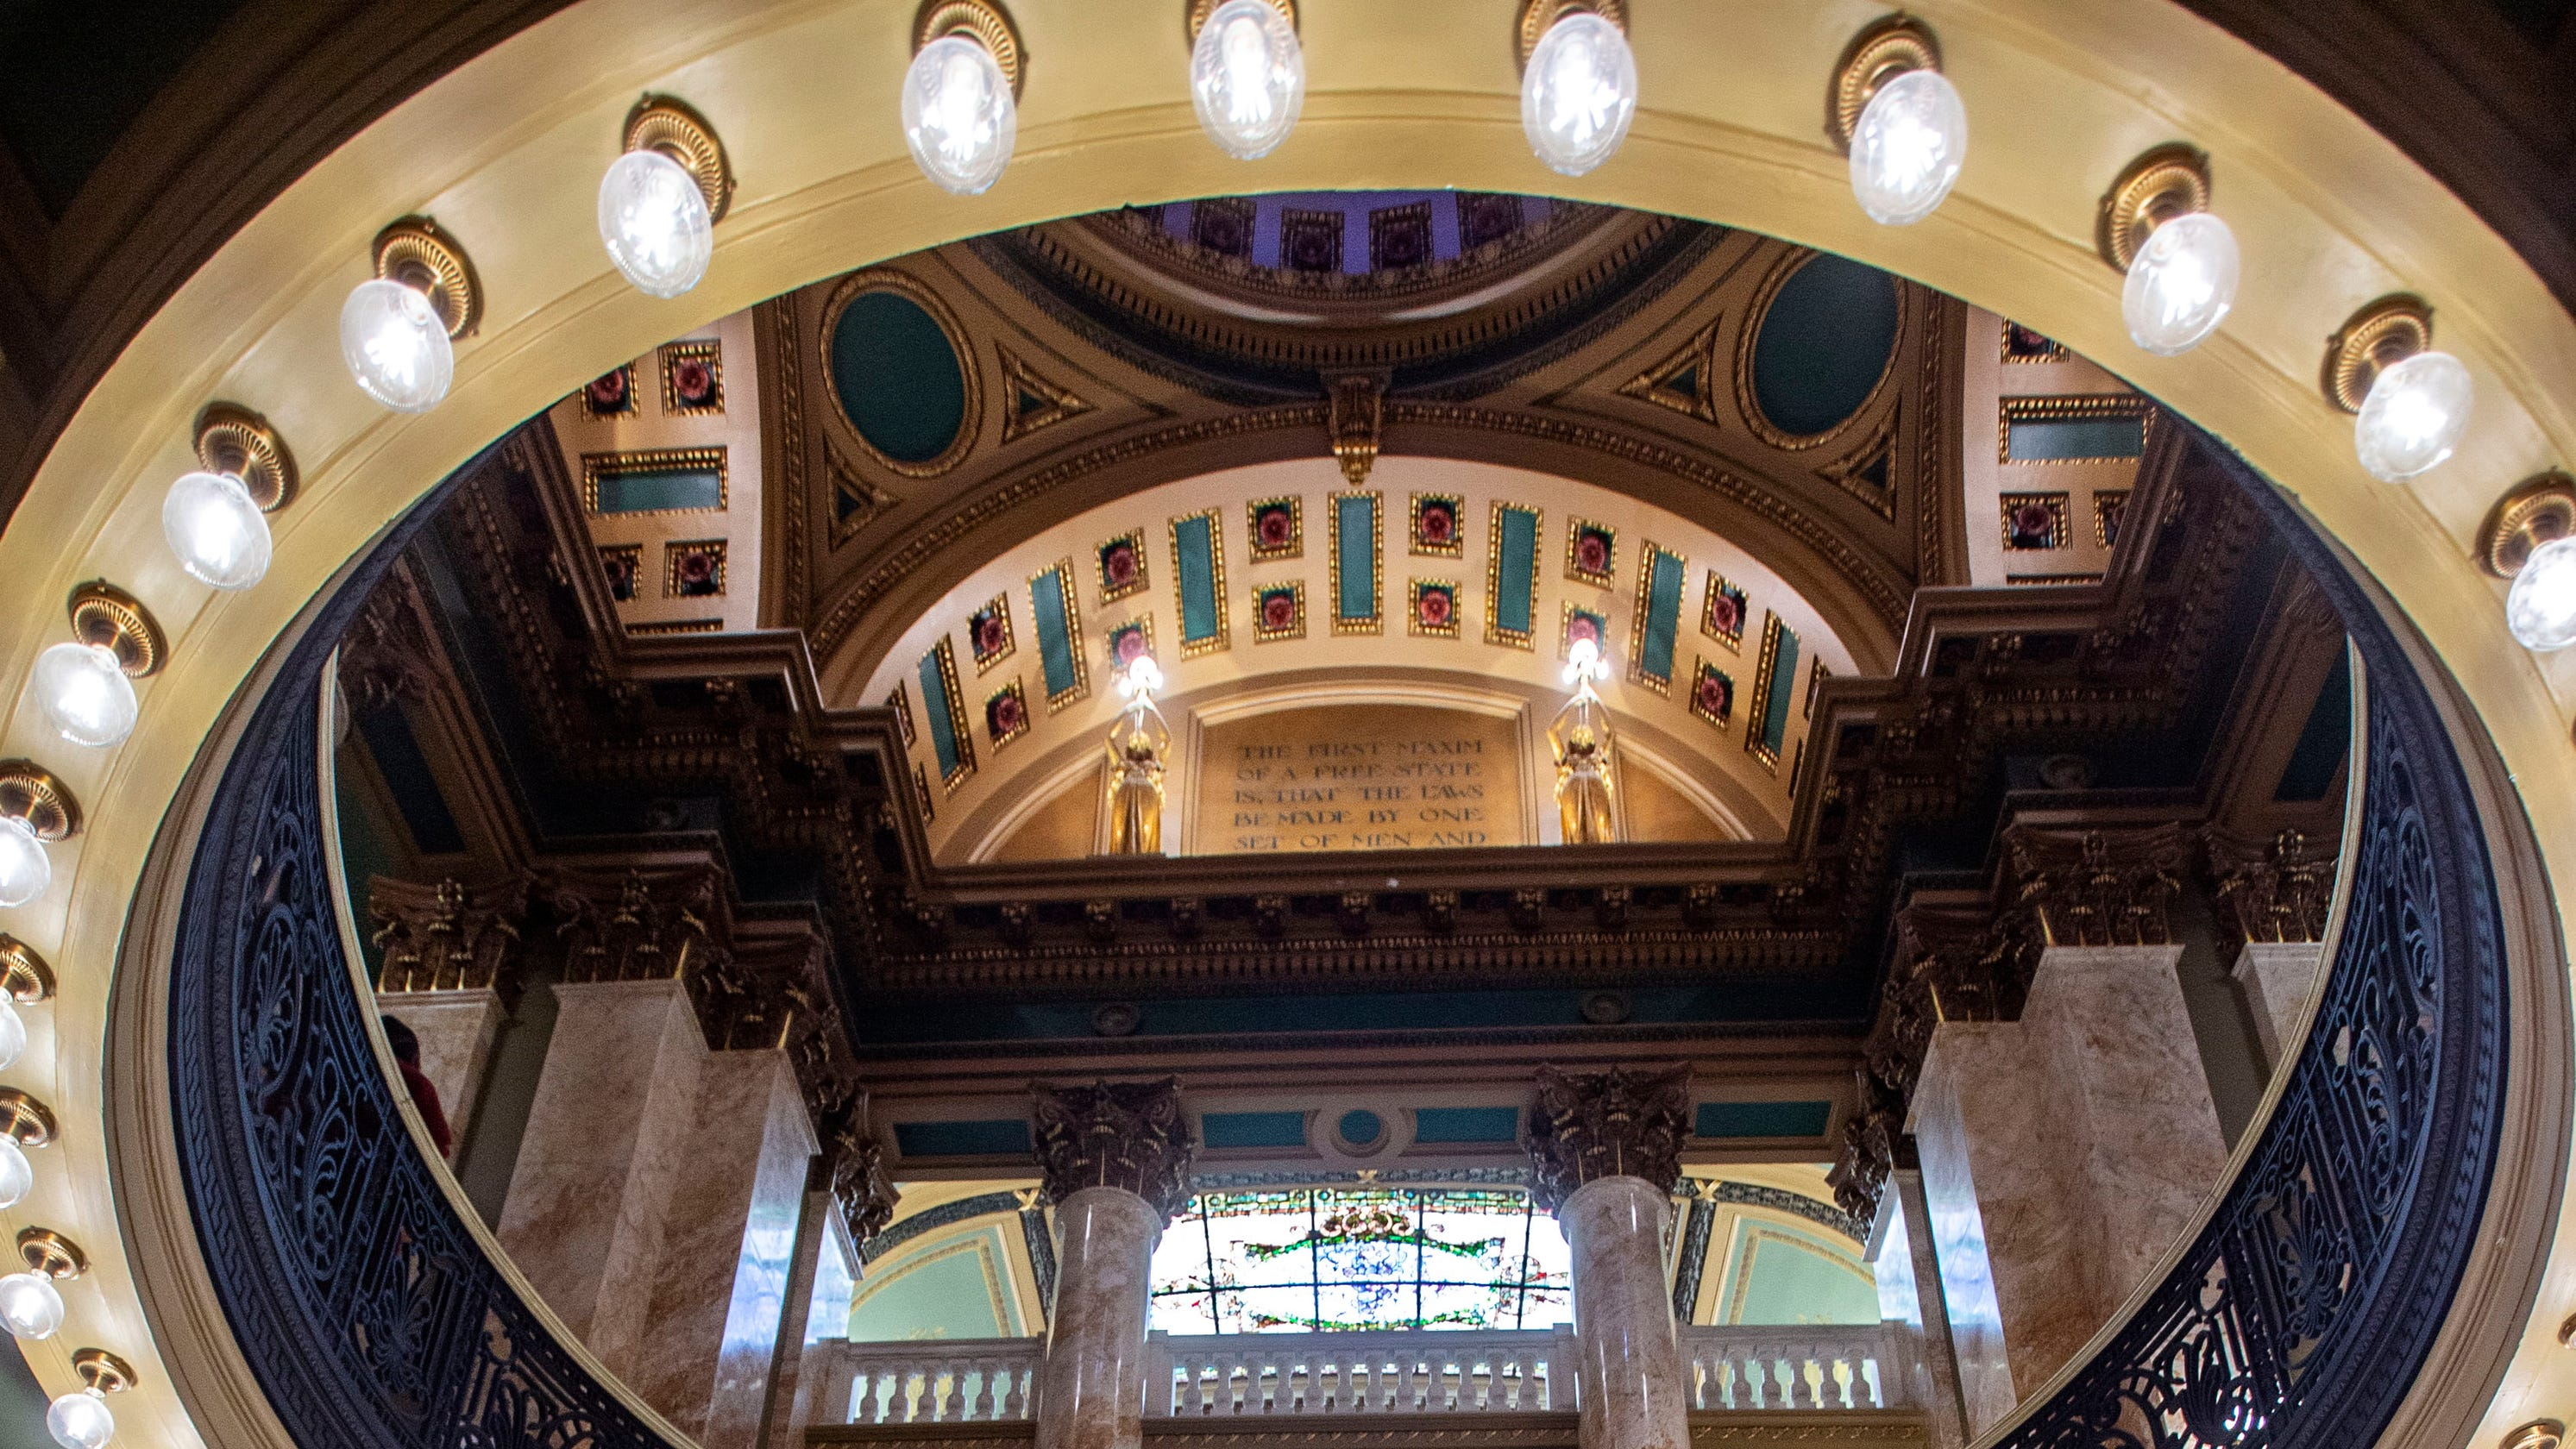 'A true gem': See inside the $39 million renovation at the historic Polk County Courthouse in Des Moines